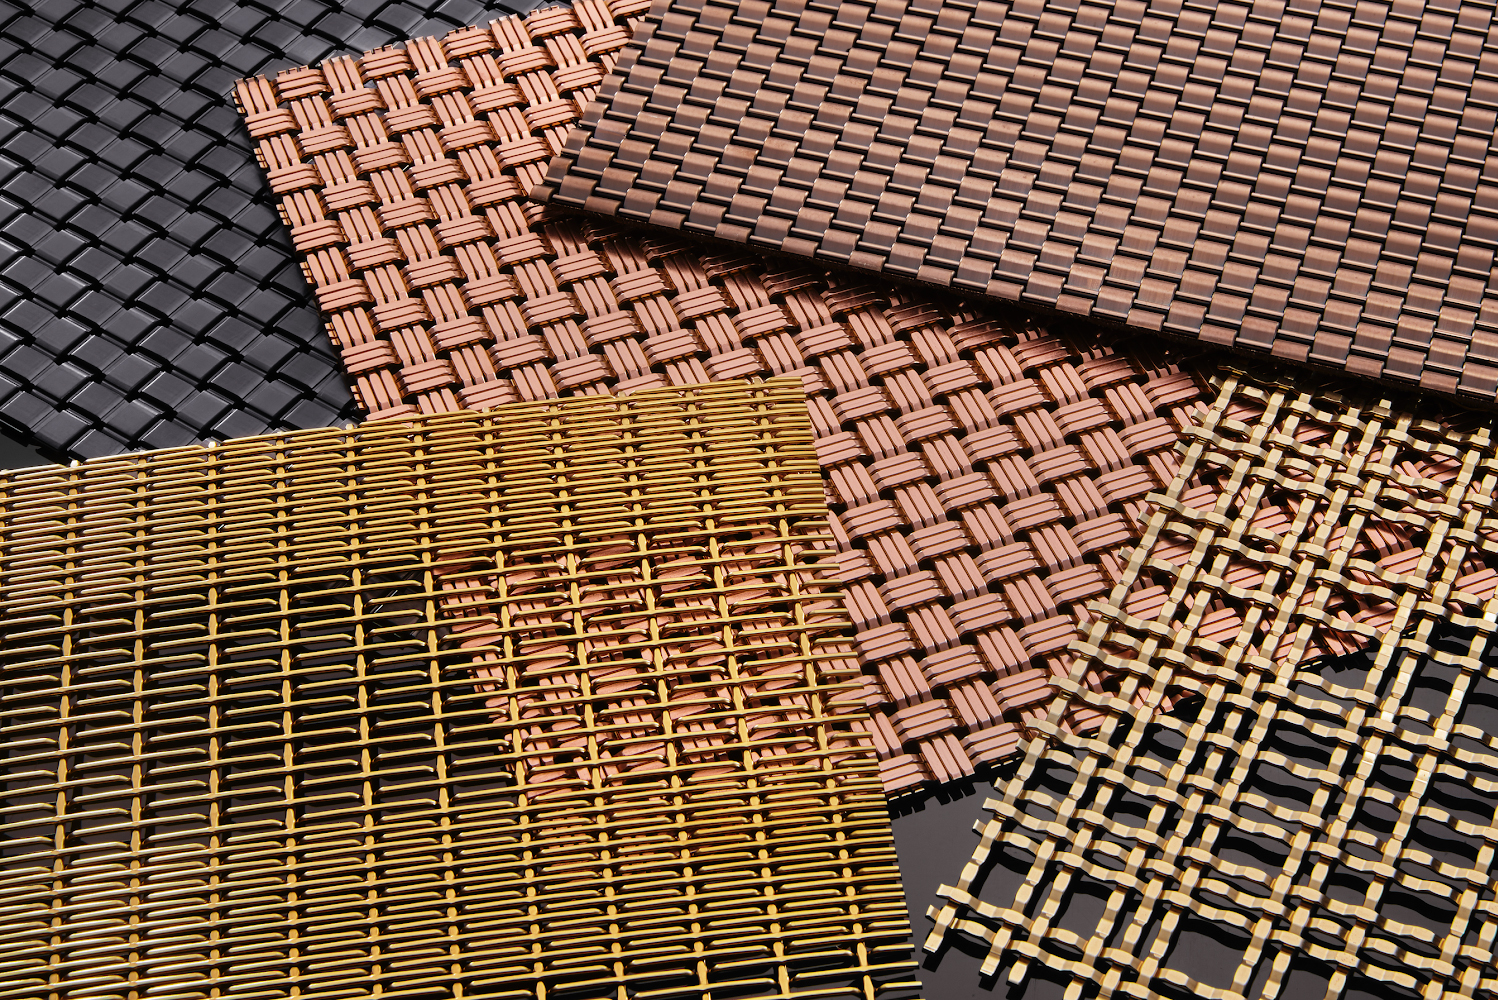 Banker Wire's stainless steel wire mesh can be enhanced with new, lasting architectural finishes including chocolate, champagne, gunmetal, rose gold, cobalt blue and royal gold.